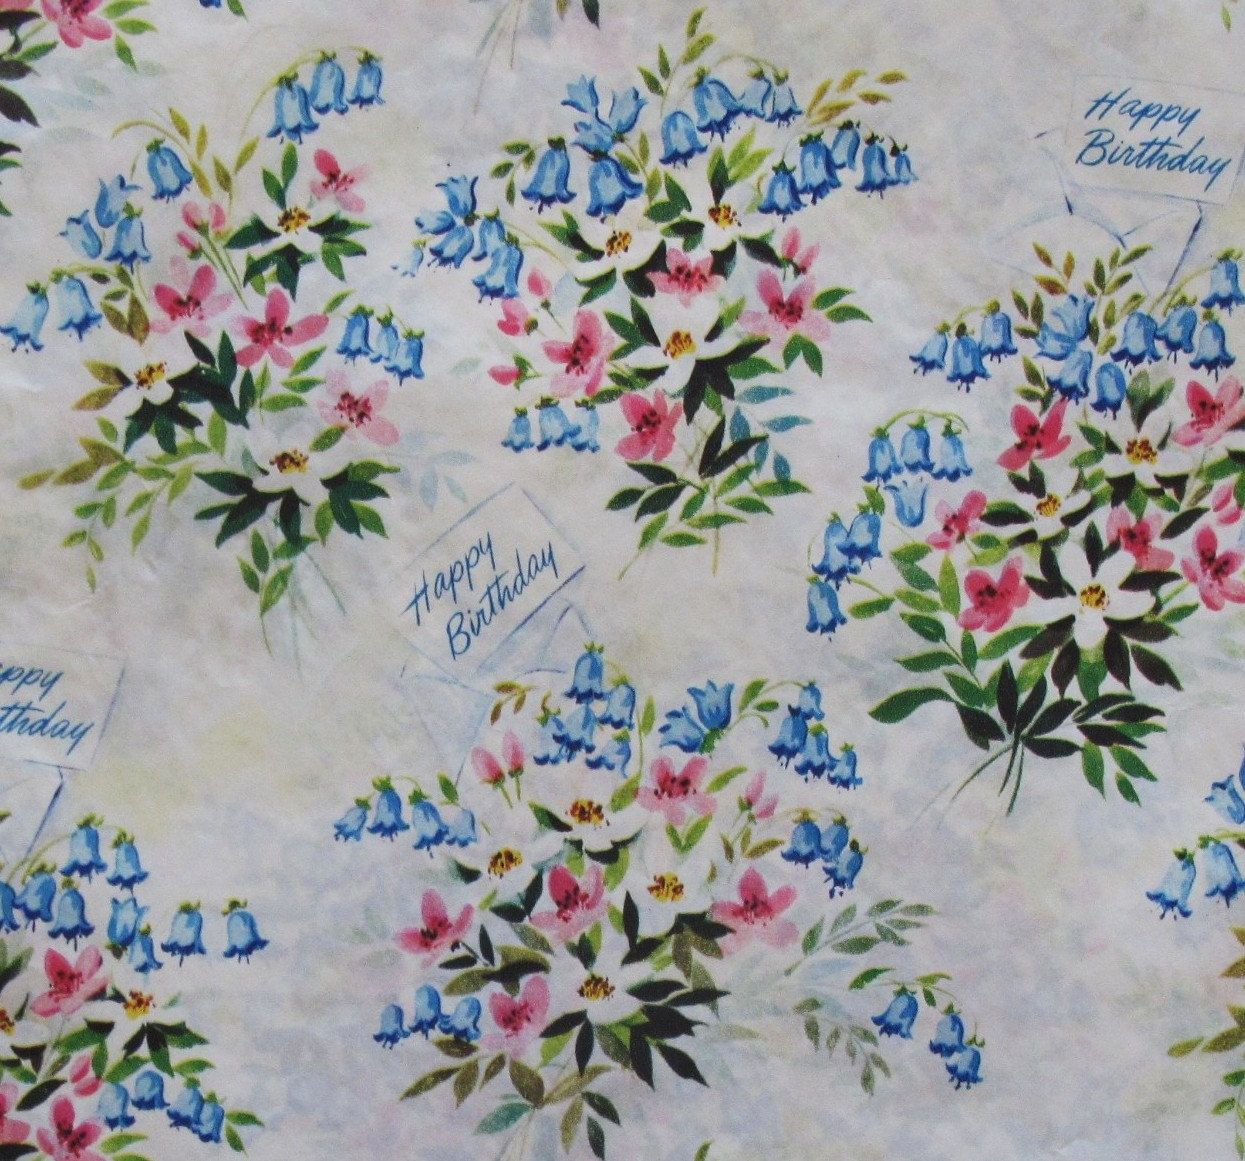 Vintage Ben-Mont HAPPY BIRTHDAY Gift Wrap Wrapping Paper Bluebells 1950s. $4.75, via Etsy.